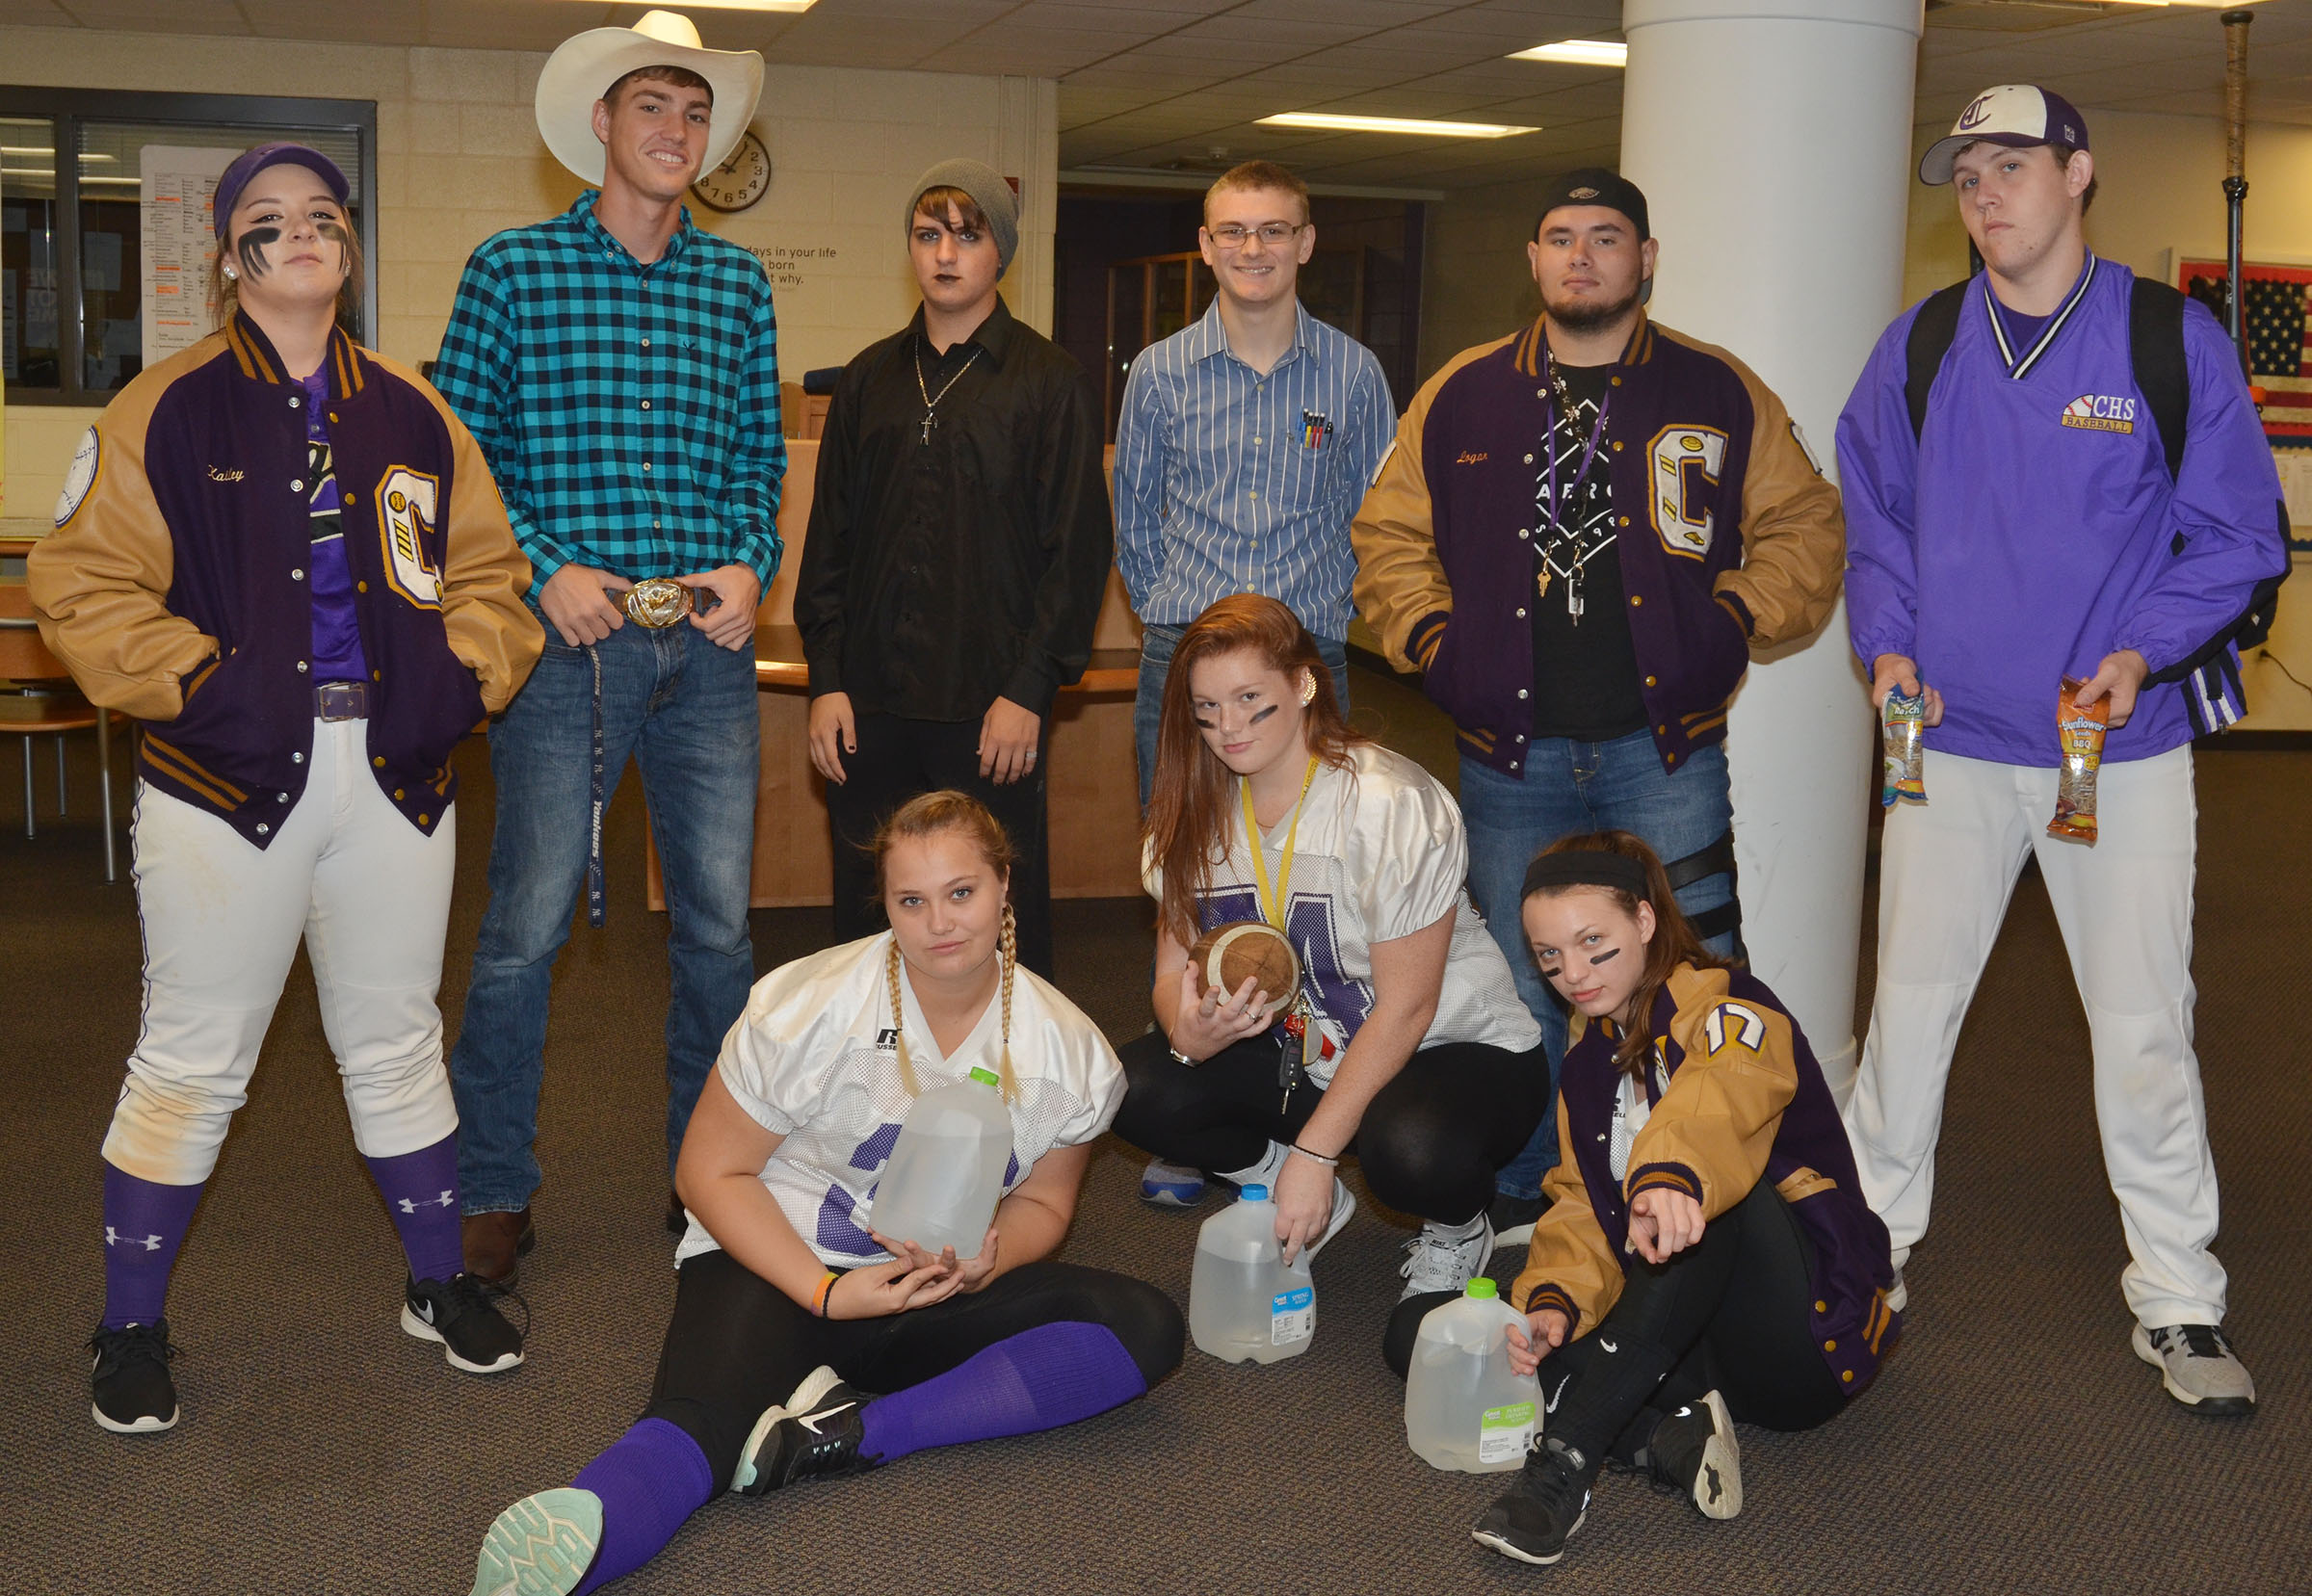 CHS seniors dress for High School Stereotype Day. From left, front, are Brenna Wethington, Mallory Haley and Caylie Blair. Back, Kailey Morris, Zack Bottoms, Austin Fitzgerald, Ben Rafferty, Logan Brown and Jared Brewster.